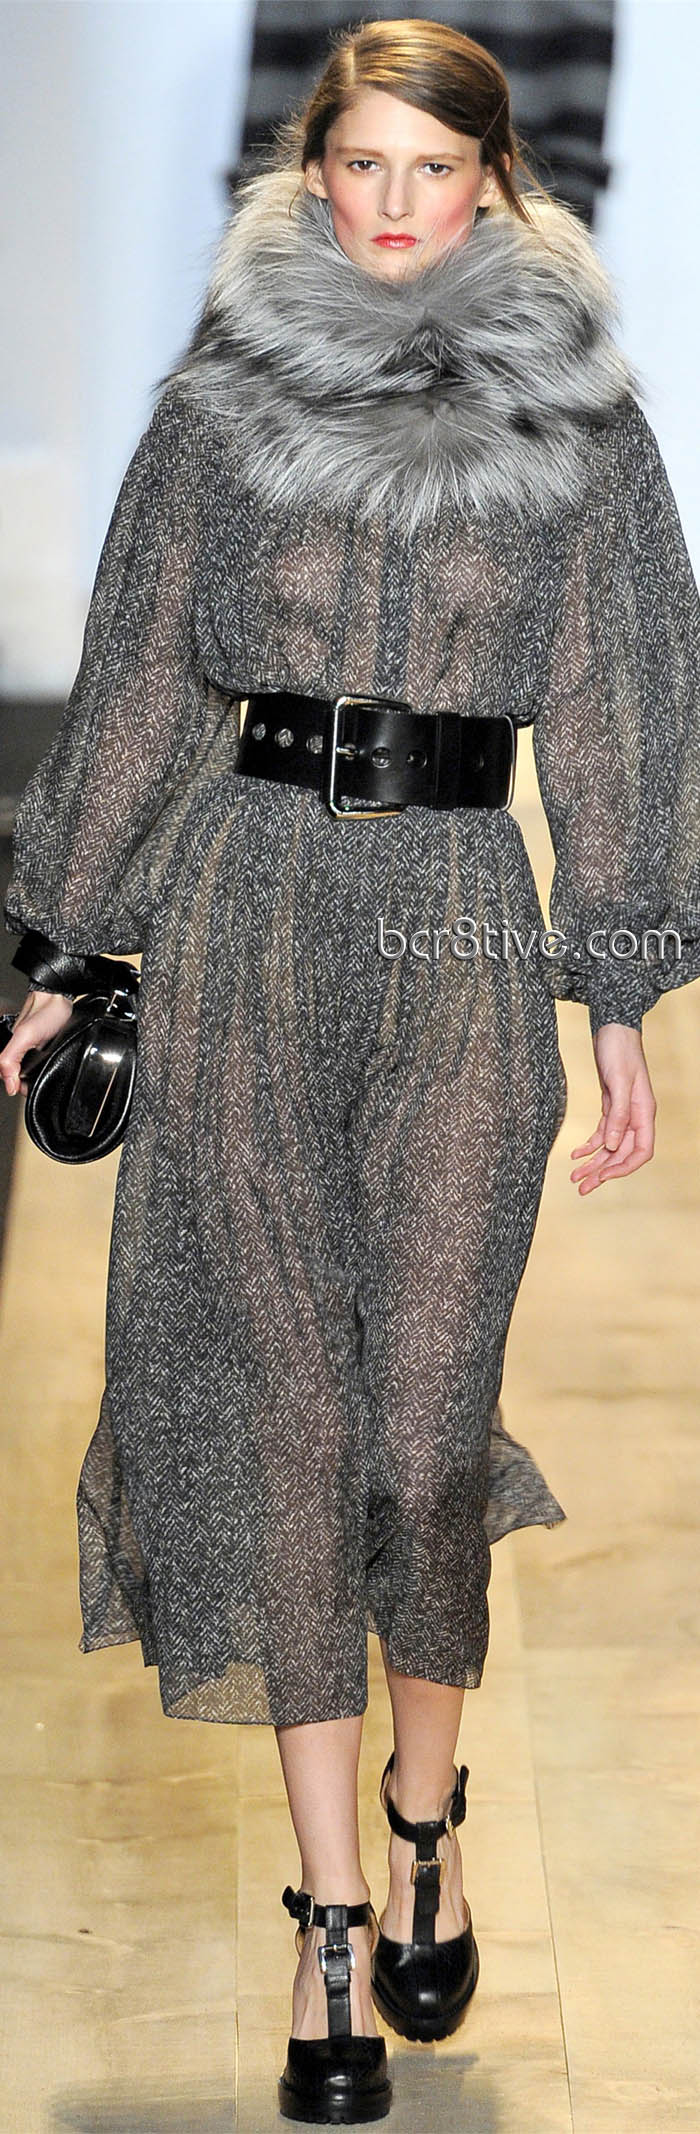 Michael Kors Fall 2012-13